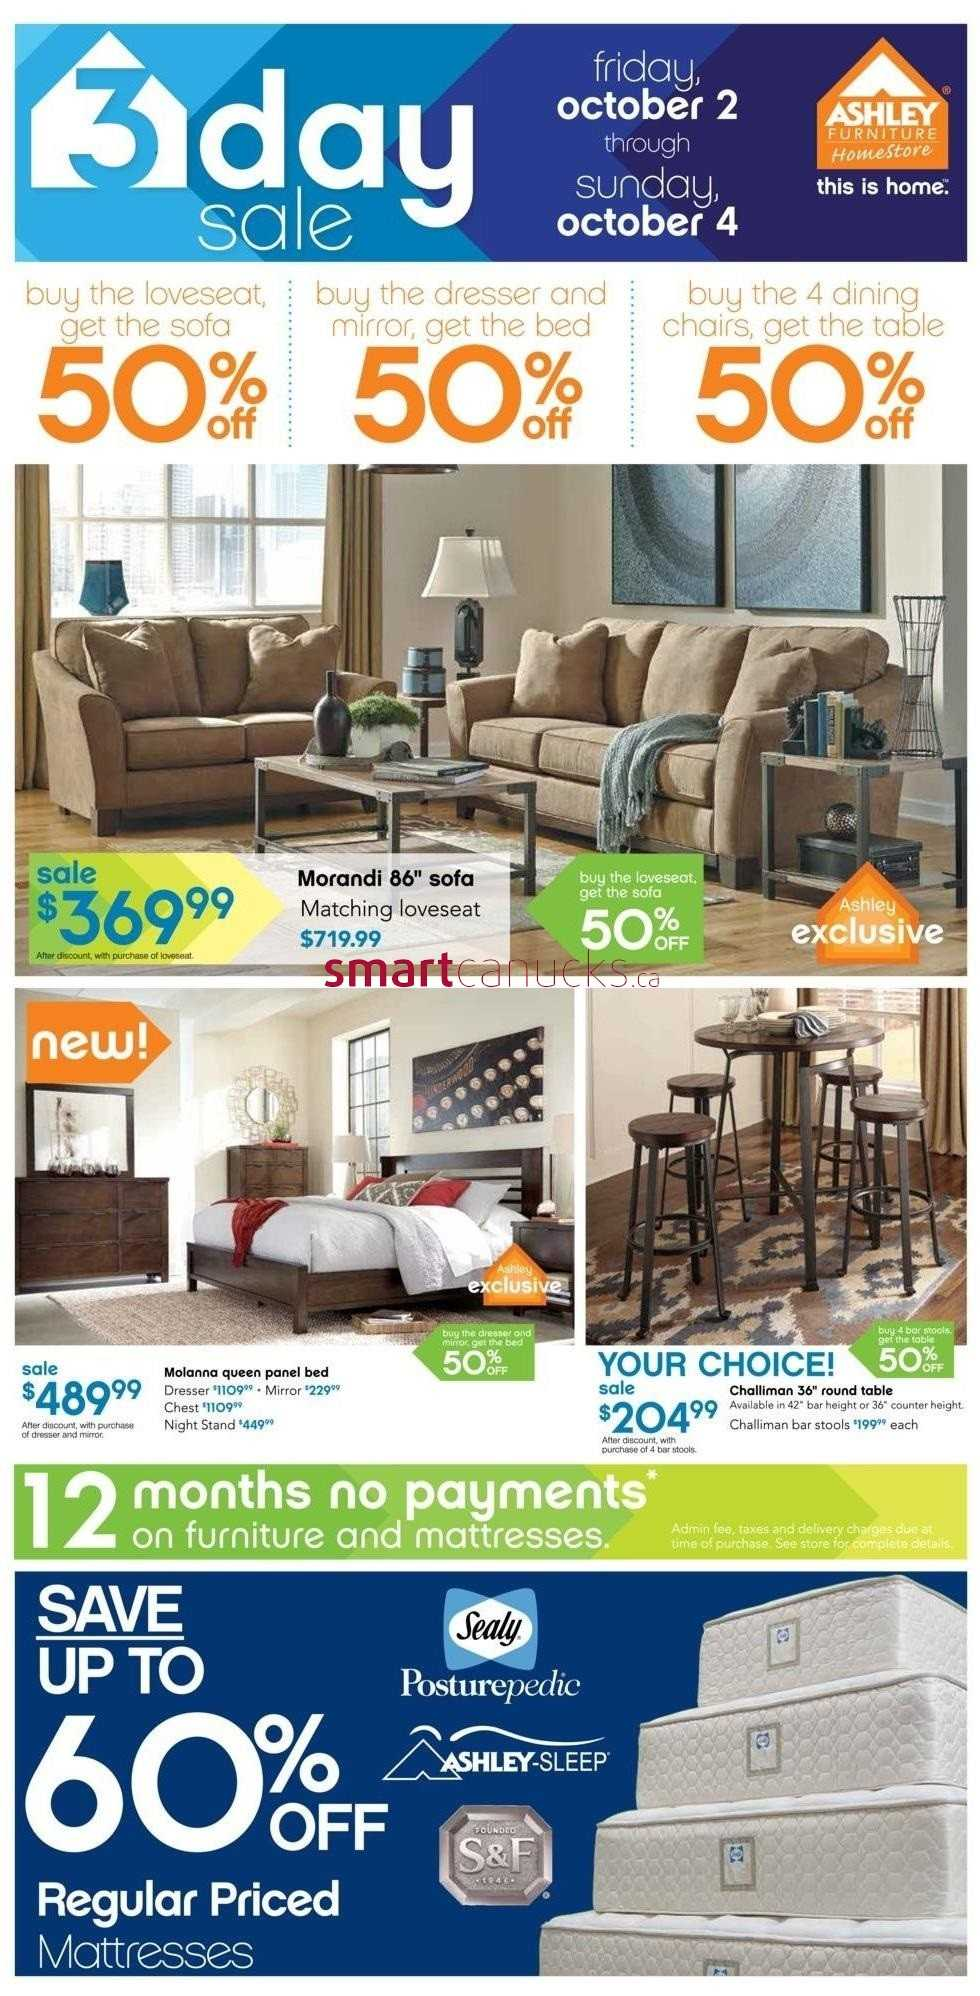 Ashley furniture home store on flyer october 2 to 4 for P s furniture flyer